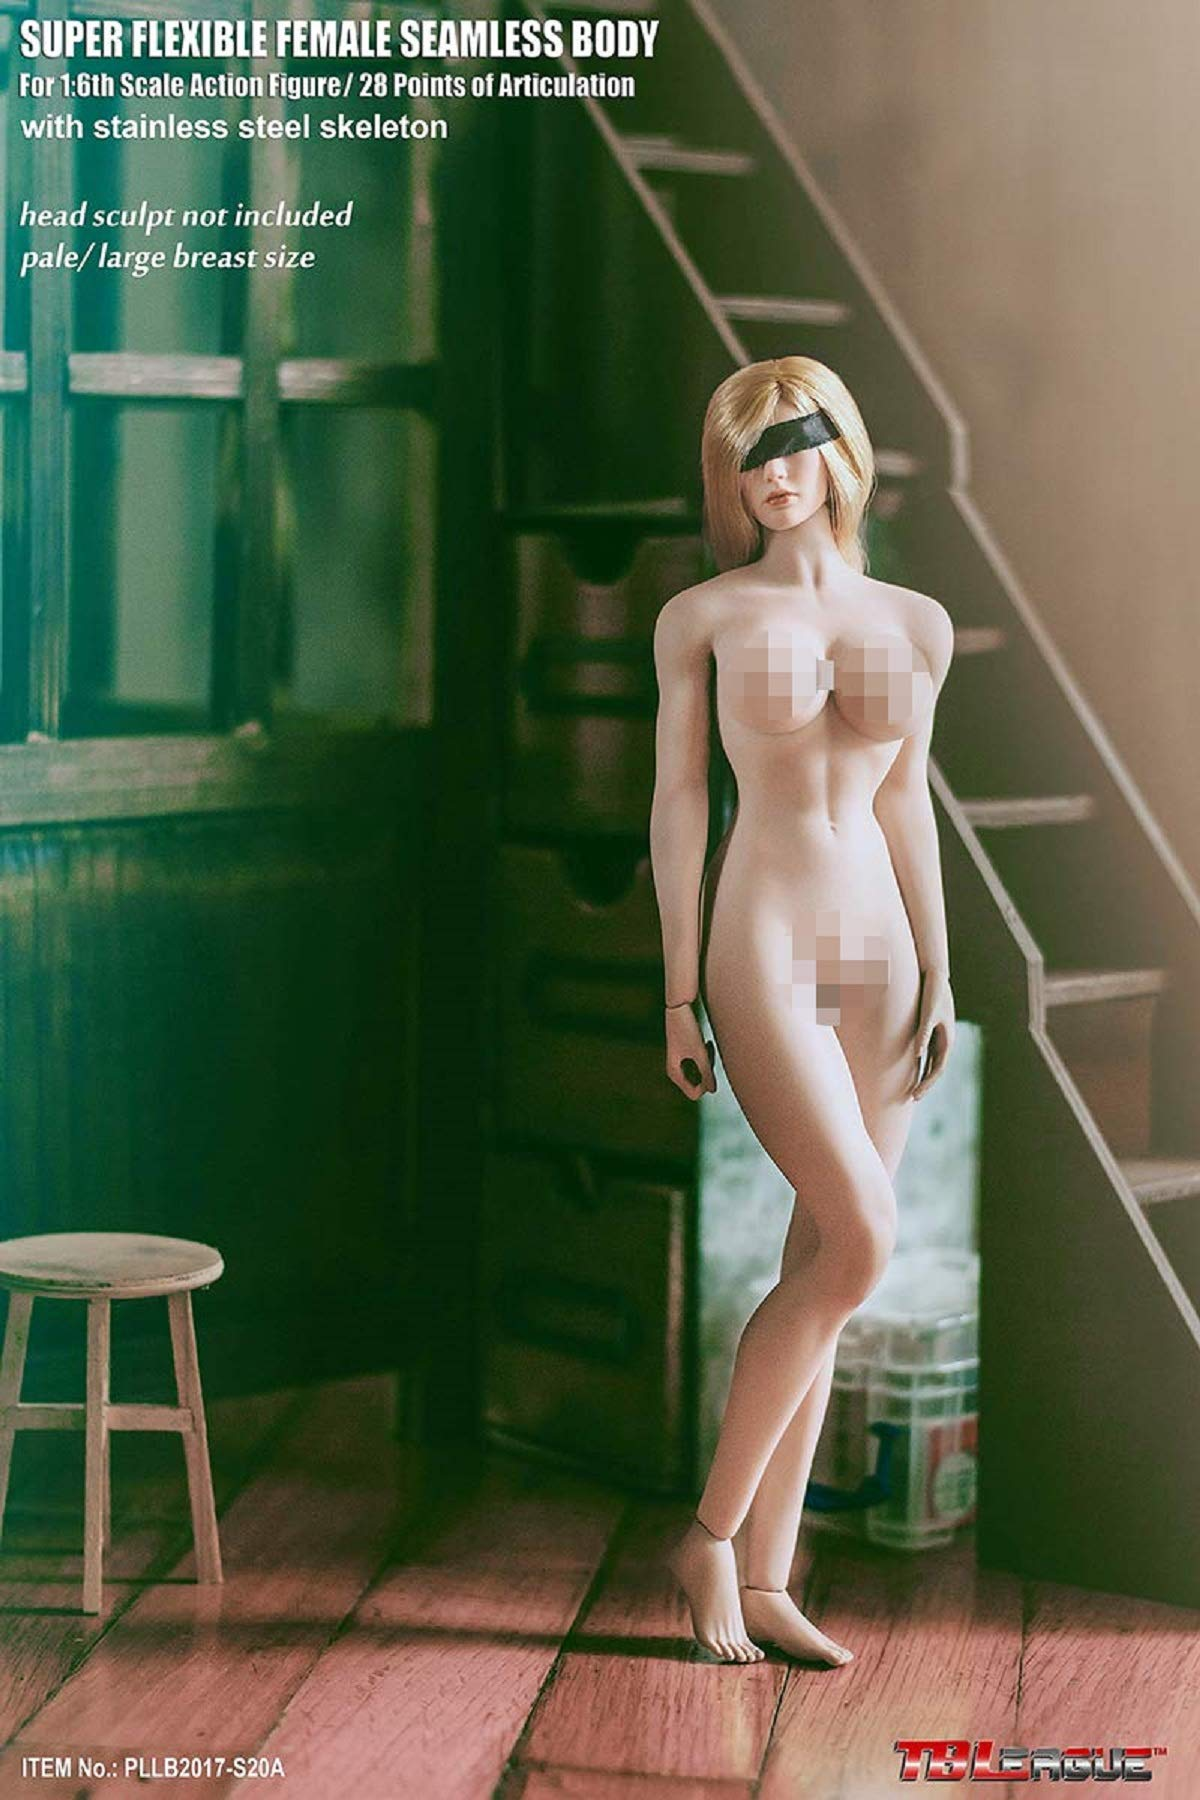 OBEST 1/6 Female Super Flexible Seamless Body Pale Action Figure (S20A)